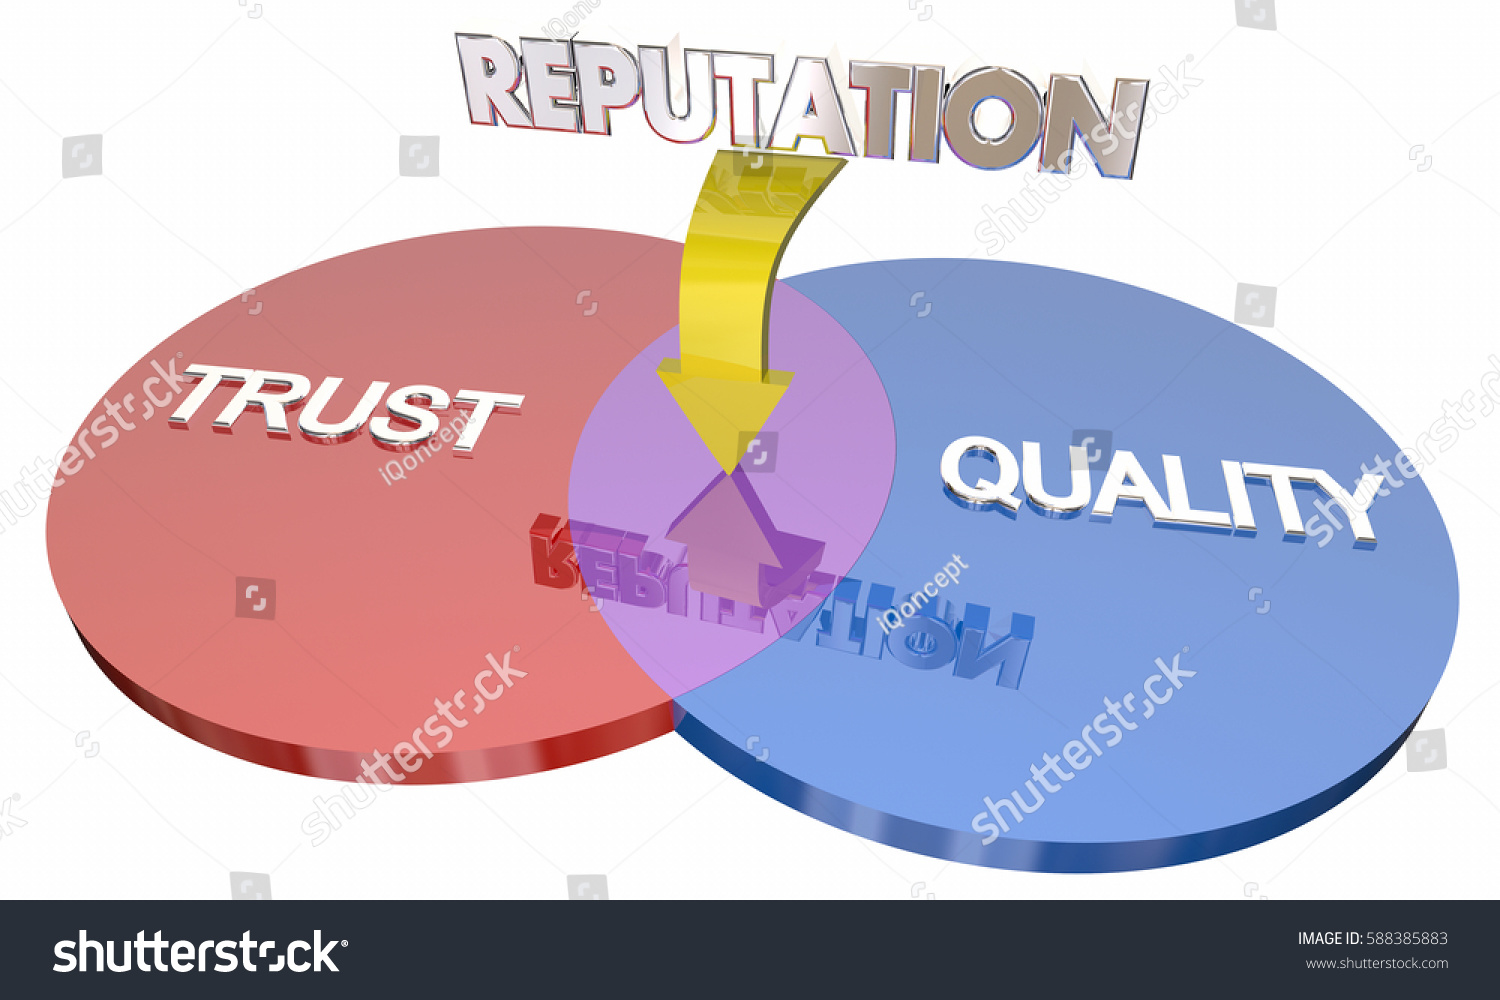 Trust quality reputation venn diagram best stock illustration trust quality reputation venn diagram best company 3d illustration pooptronica